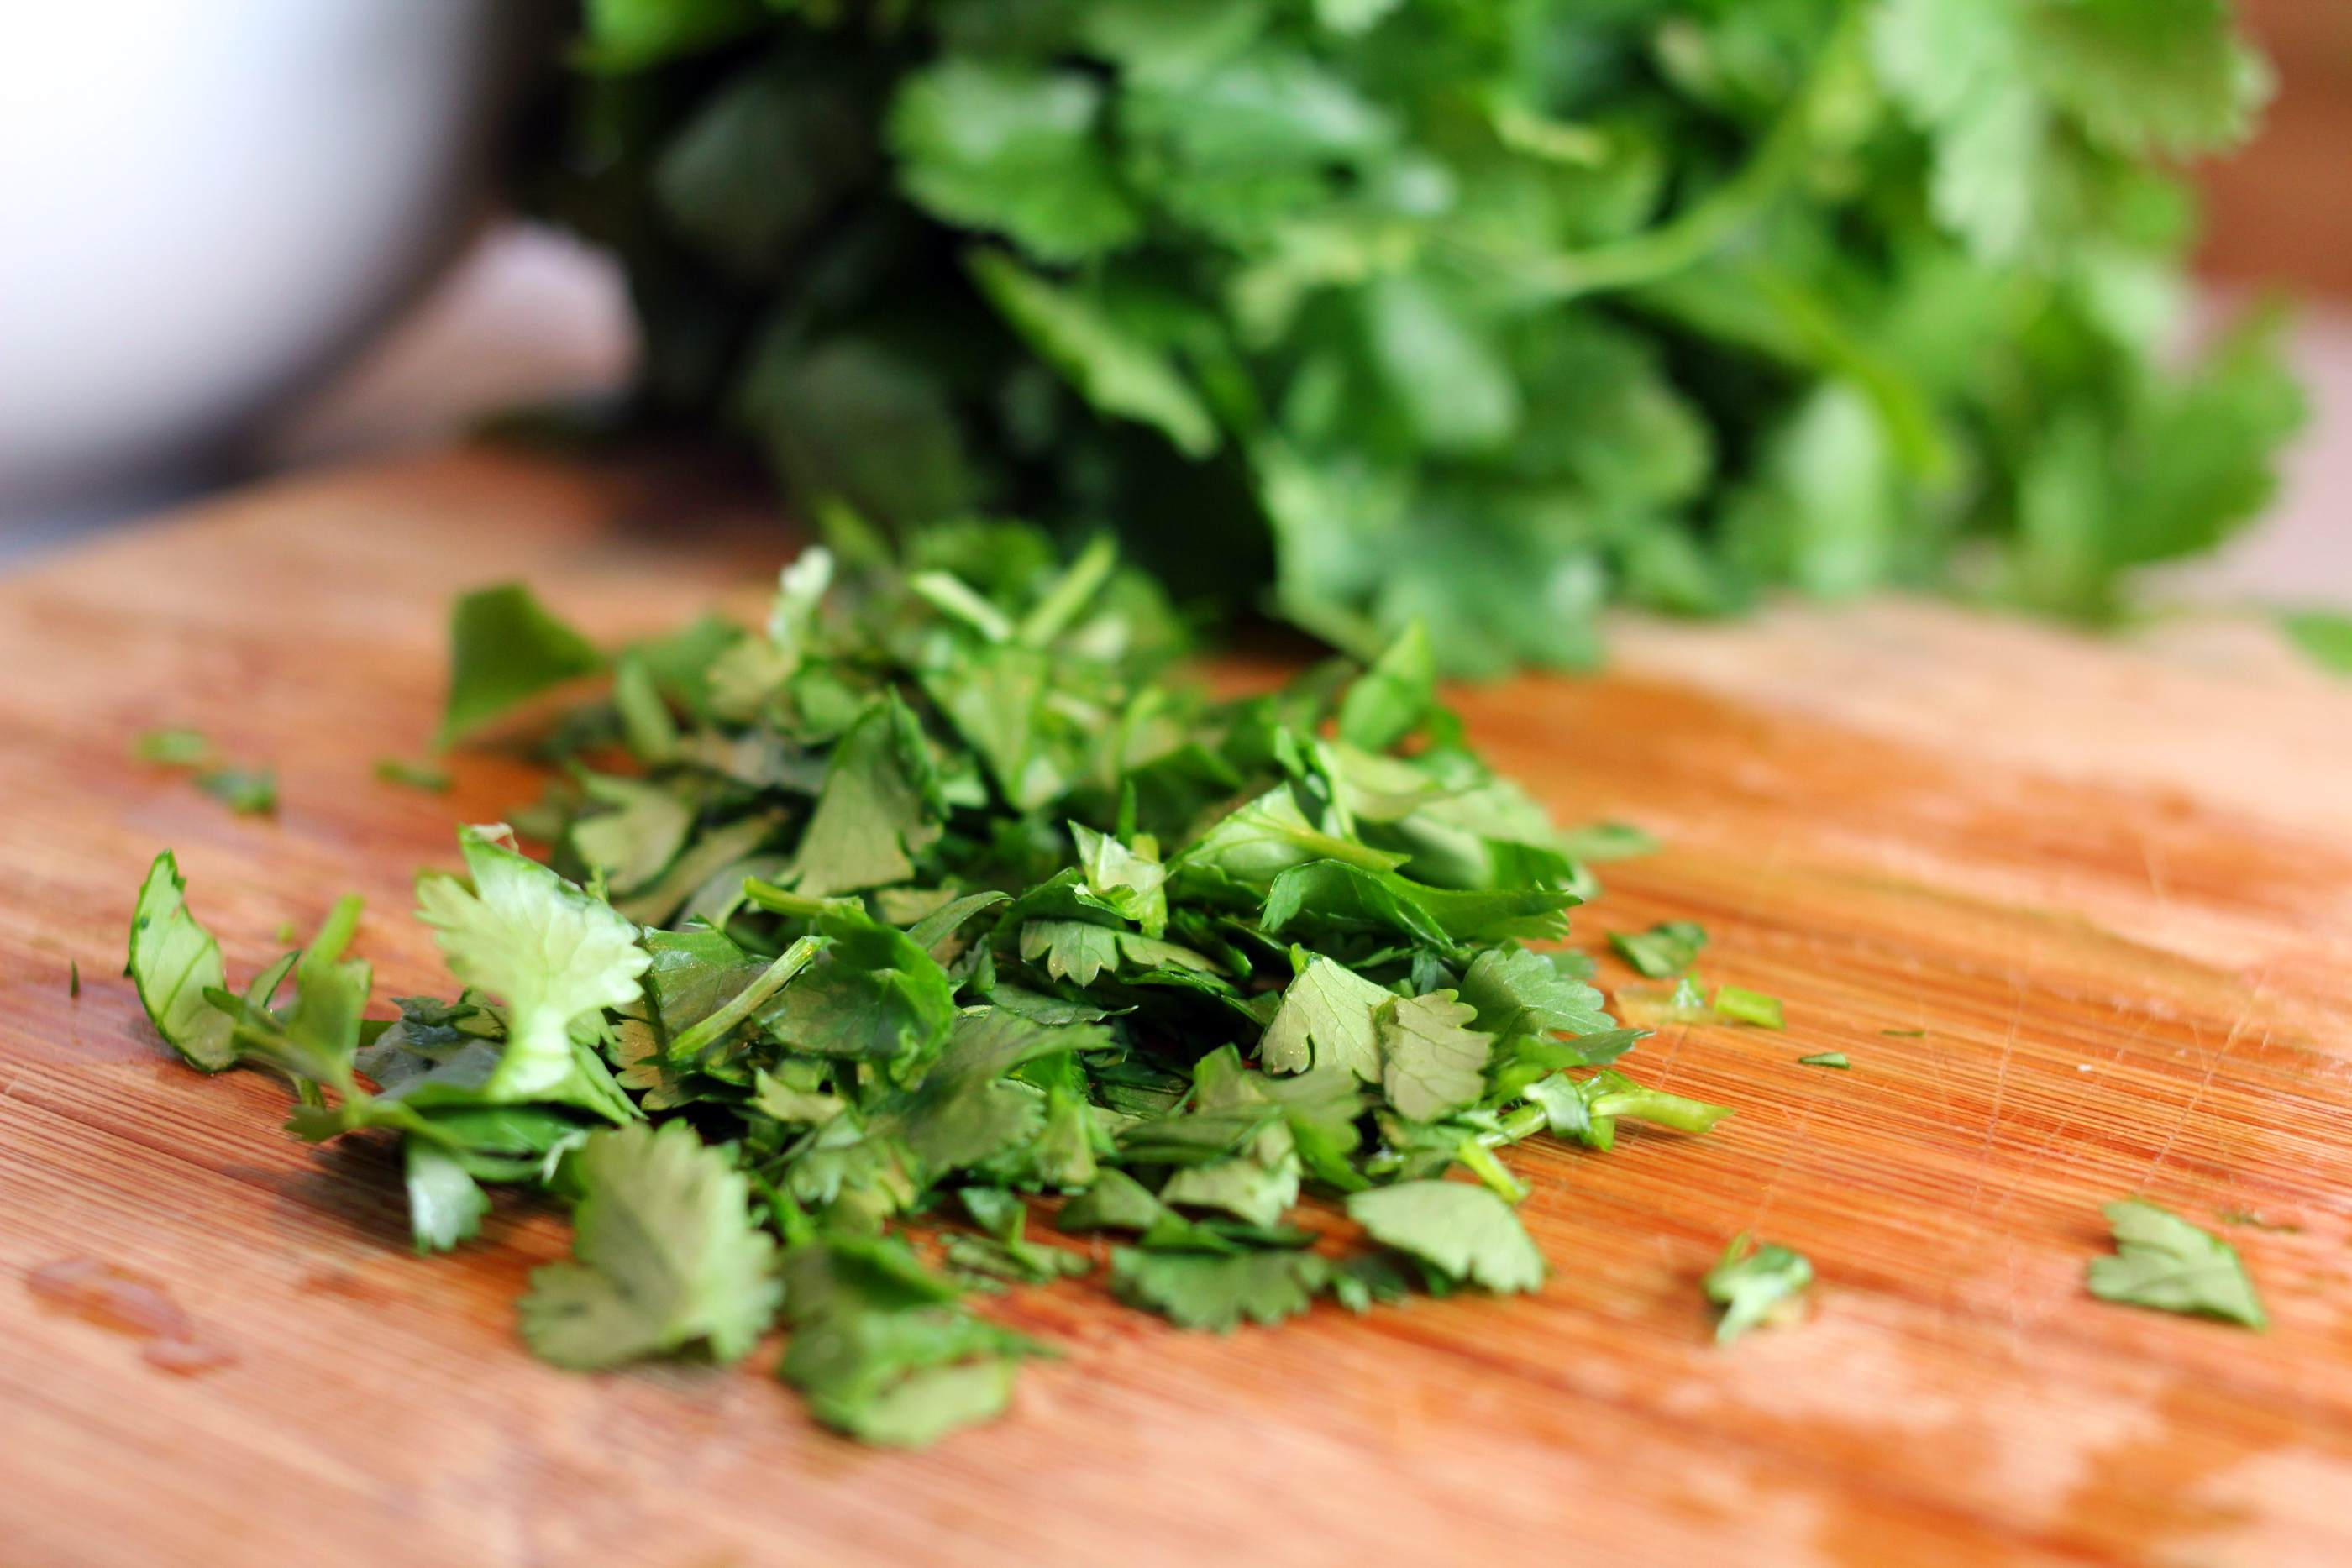 Many Mexican farms providing the U.S. with cilantro tested positive for parasites that case Cycloporasis.